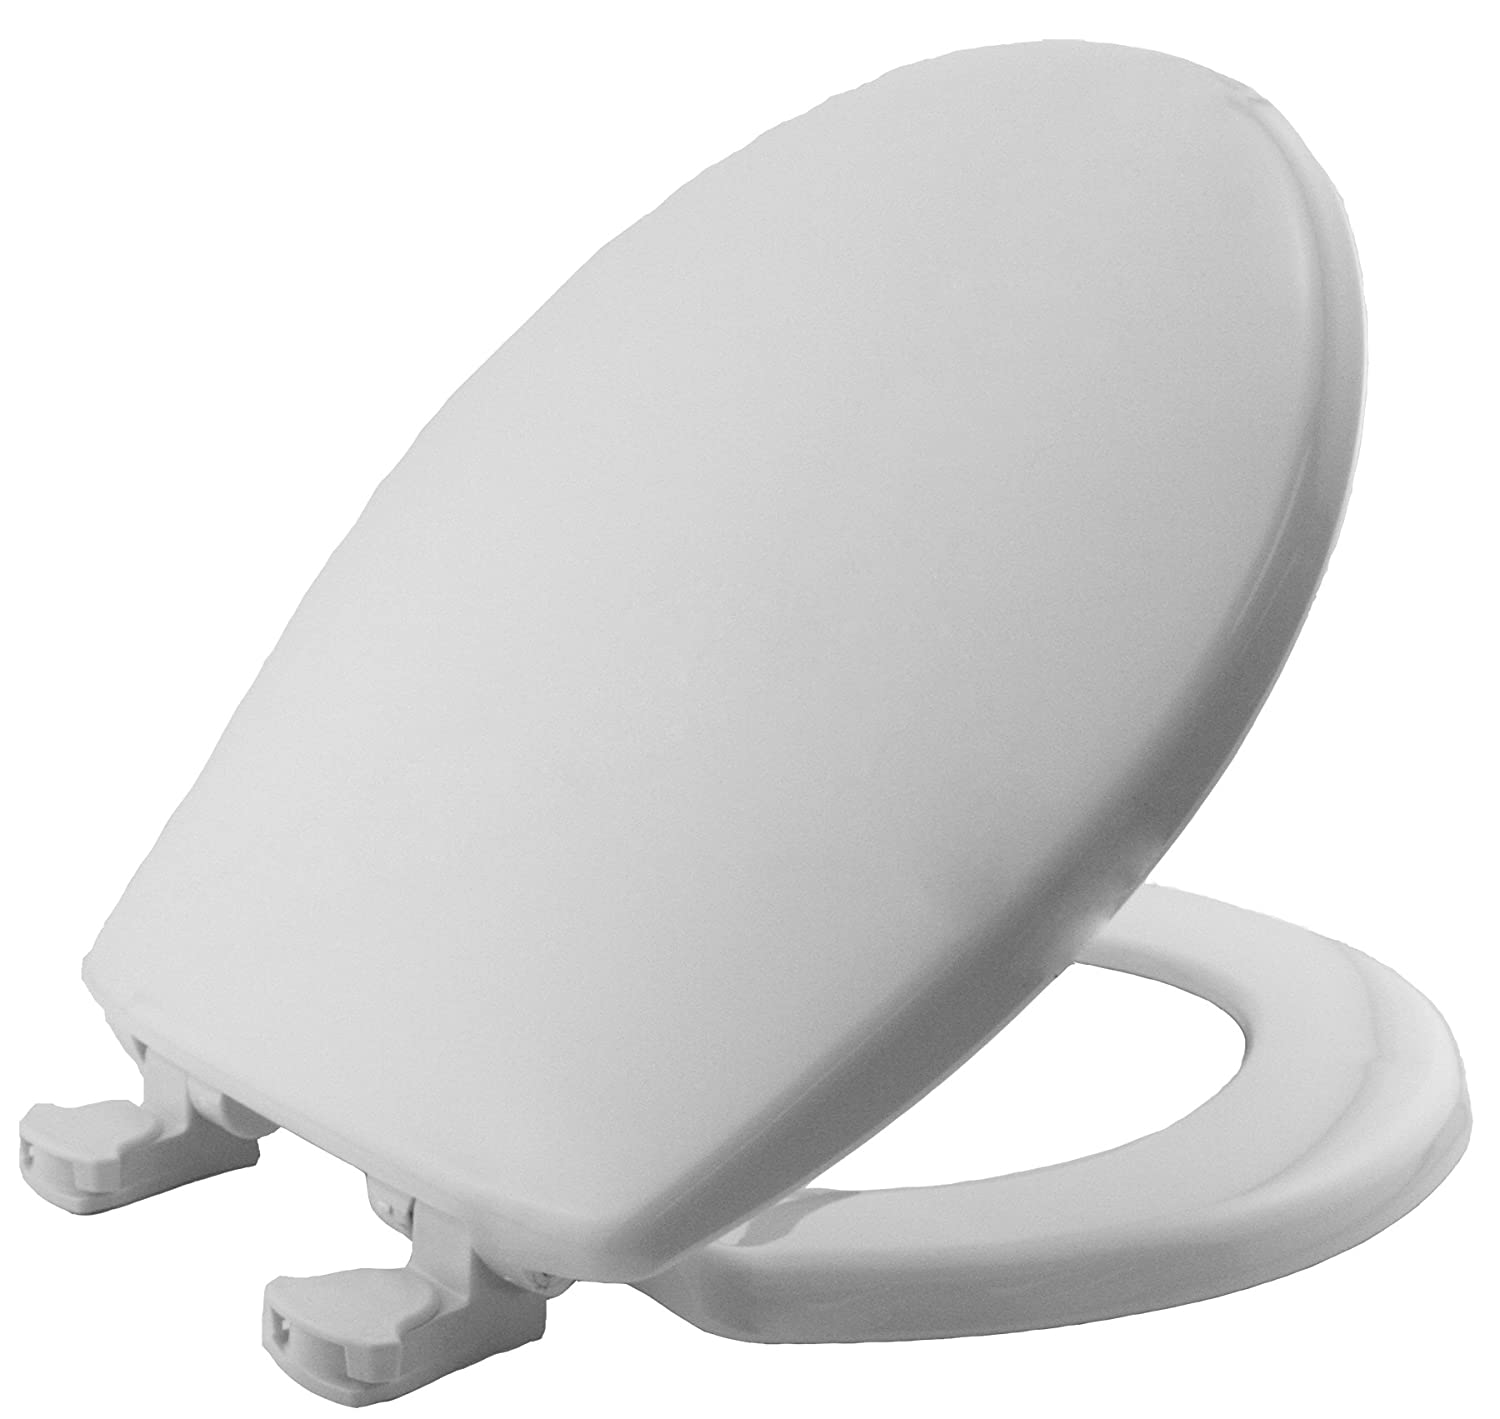 dark grey toilet seat. Mayfair Solid Plastic Toilet Seat featuring Easy Clean  Change Hinges and STA TITE Fastening System Round White 80EC 000 Toliet